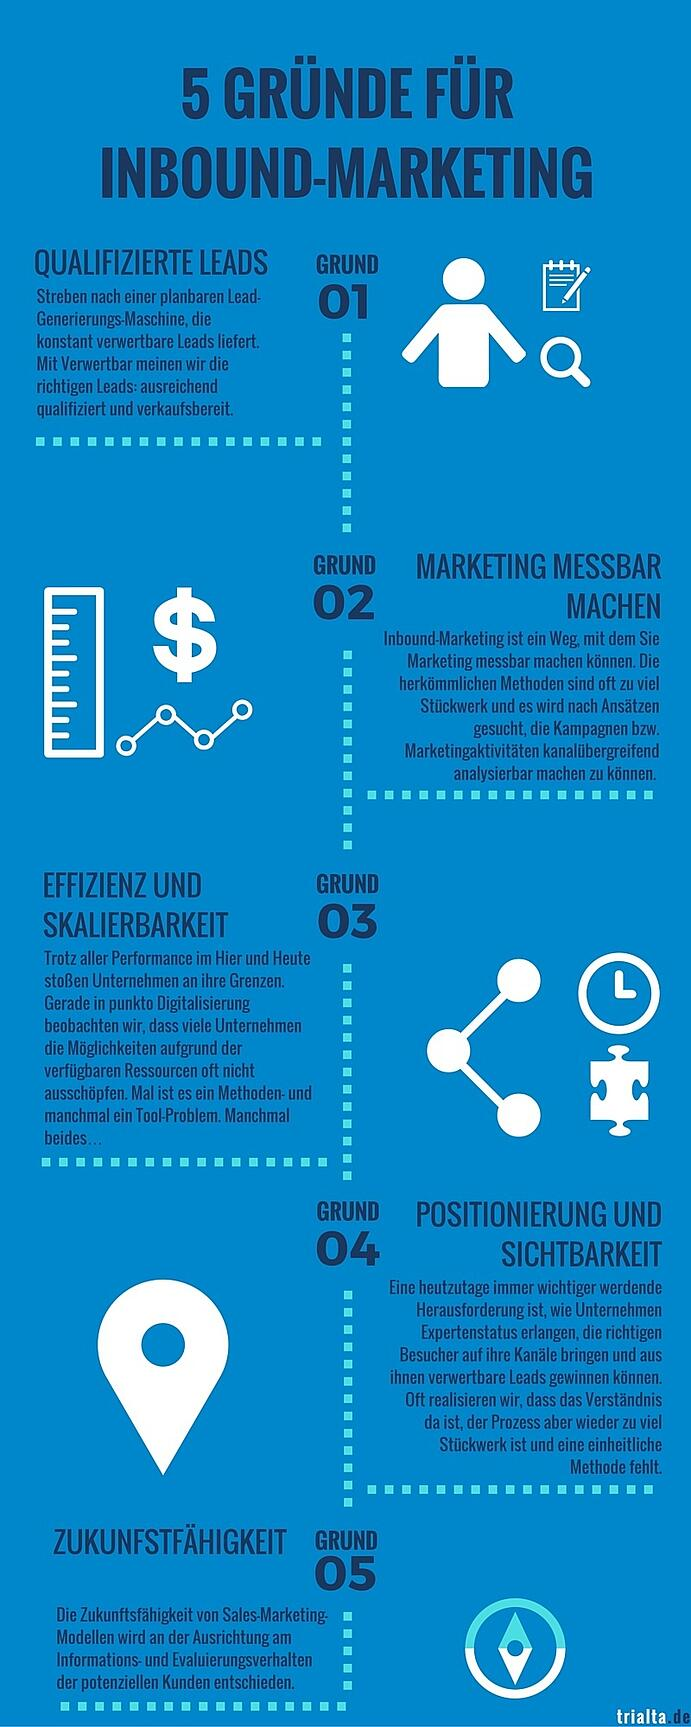 Gruende fuer Inbound Marketing